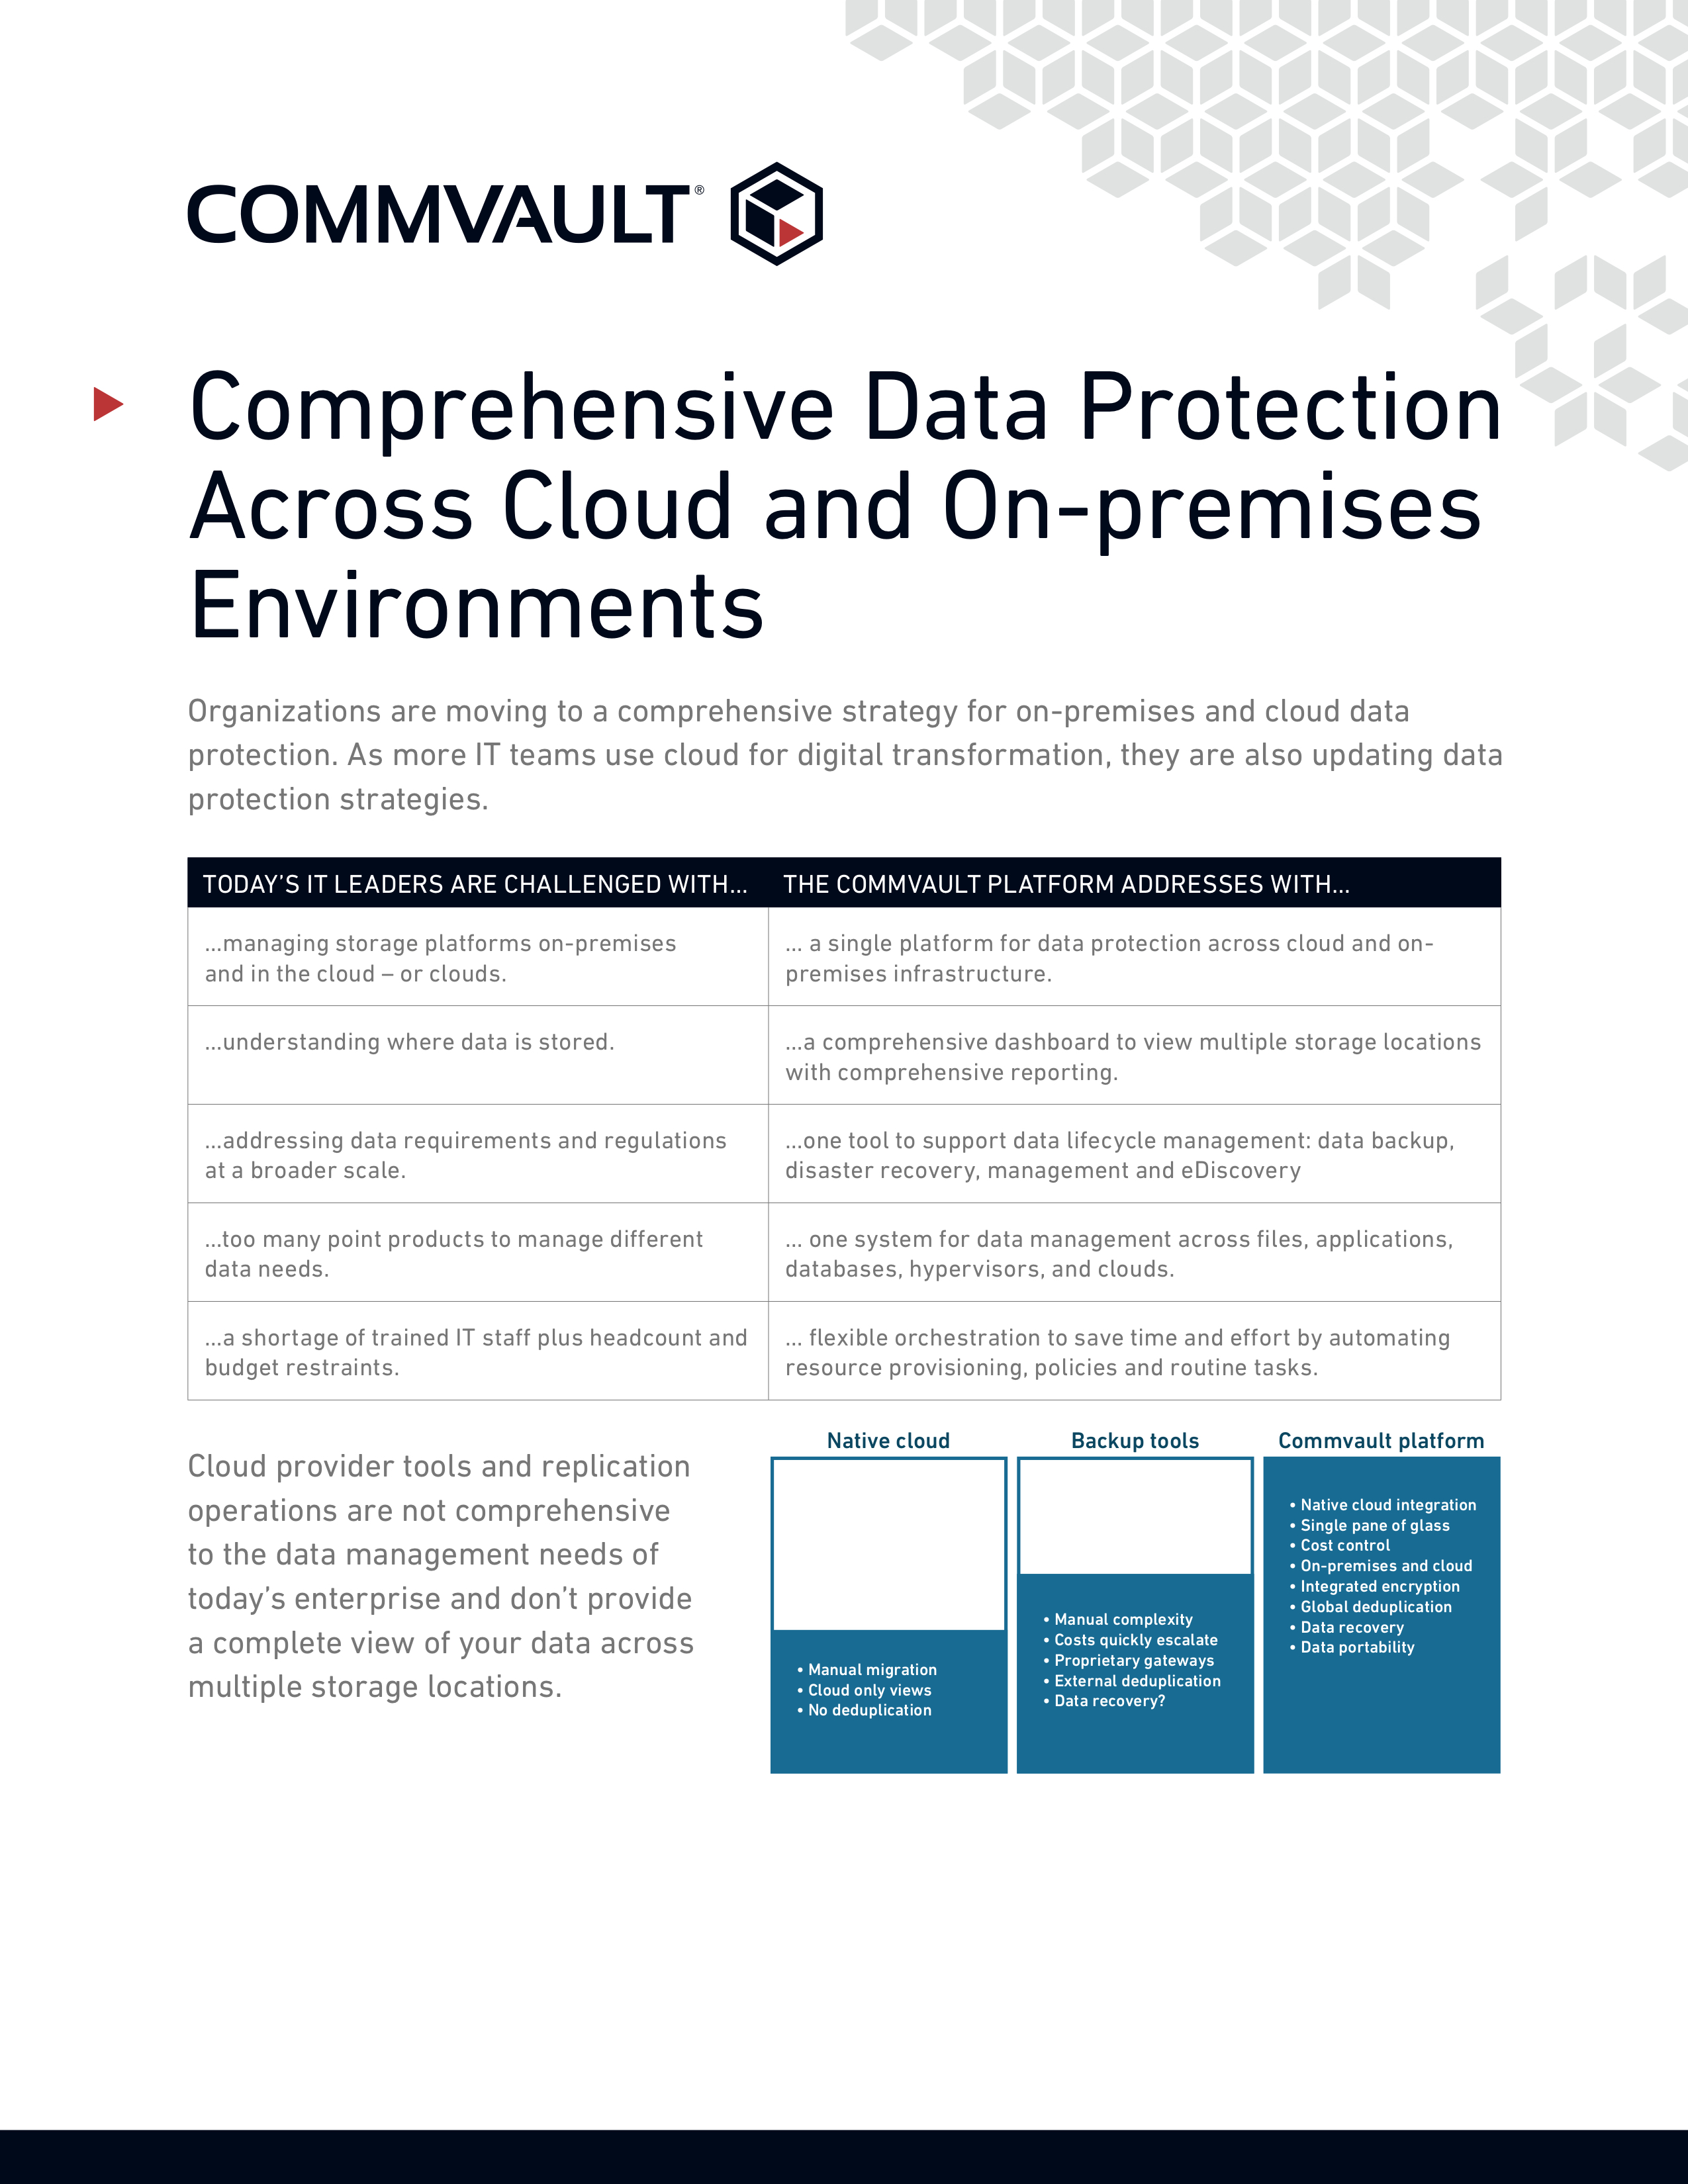 Comprehensive data protection across cloud and on premises environments